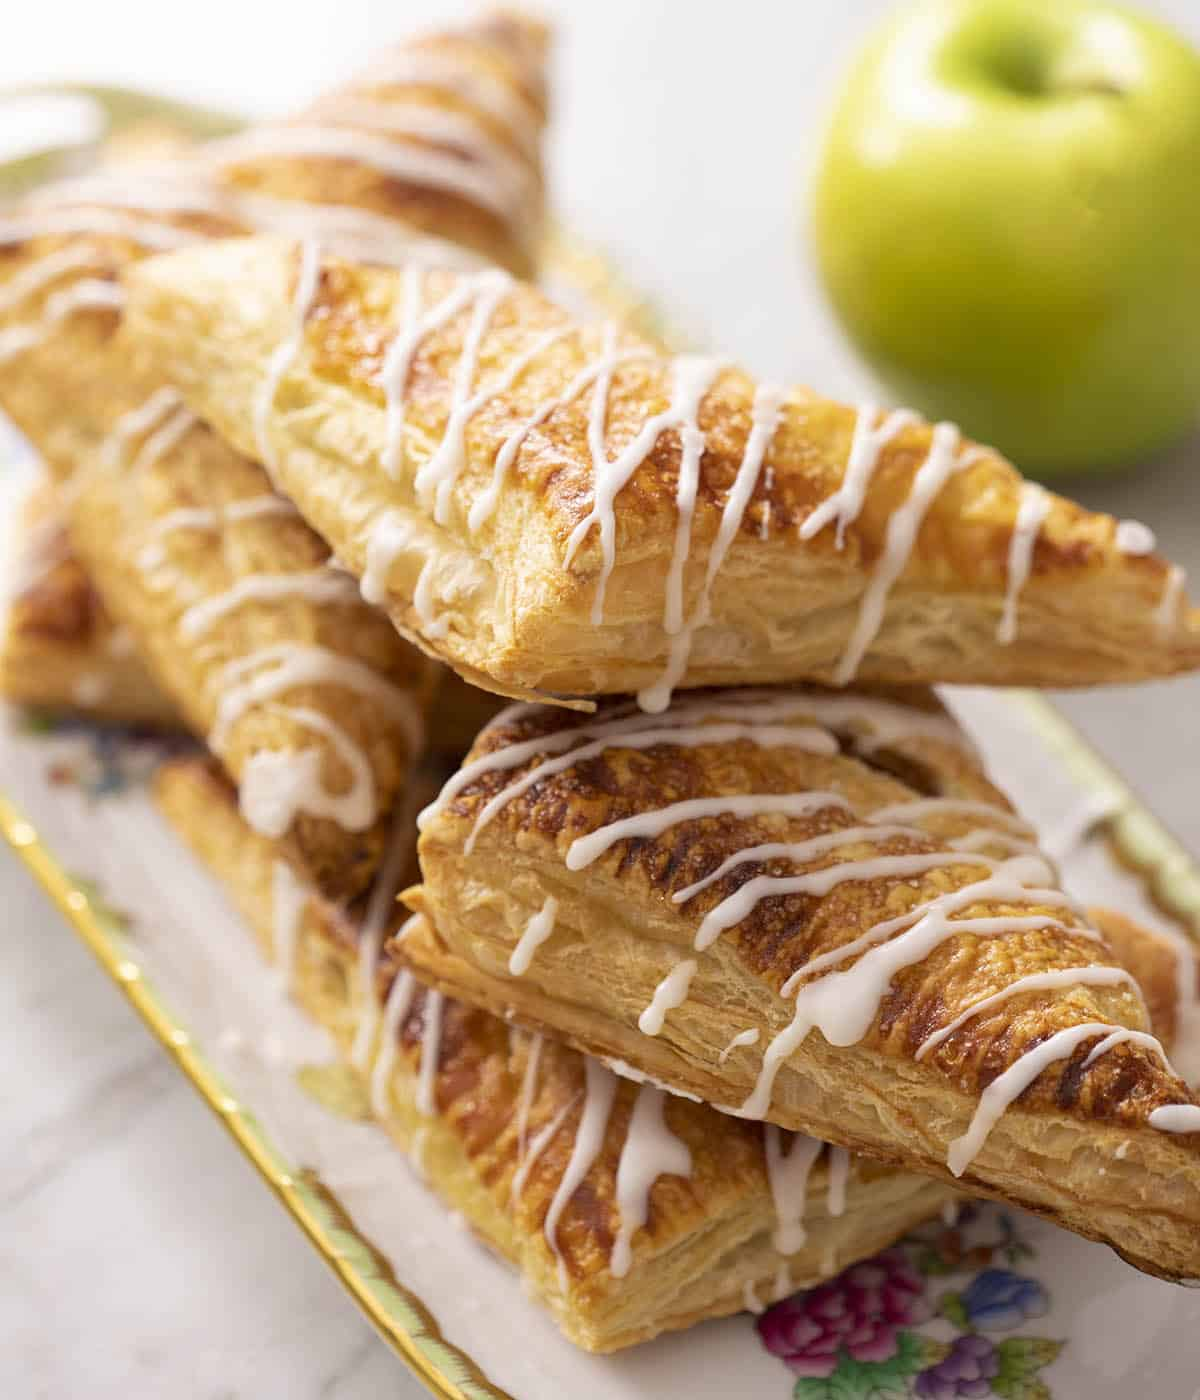 Flakey apple turnovers on a serving tray.